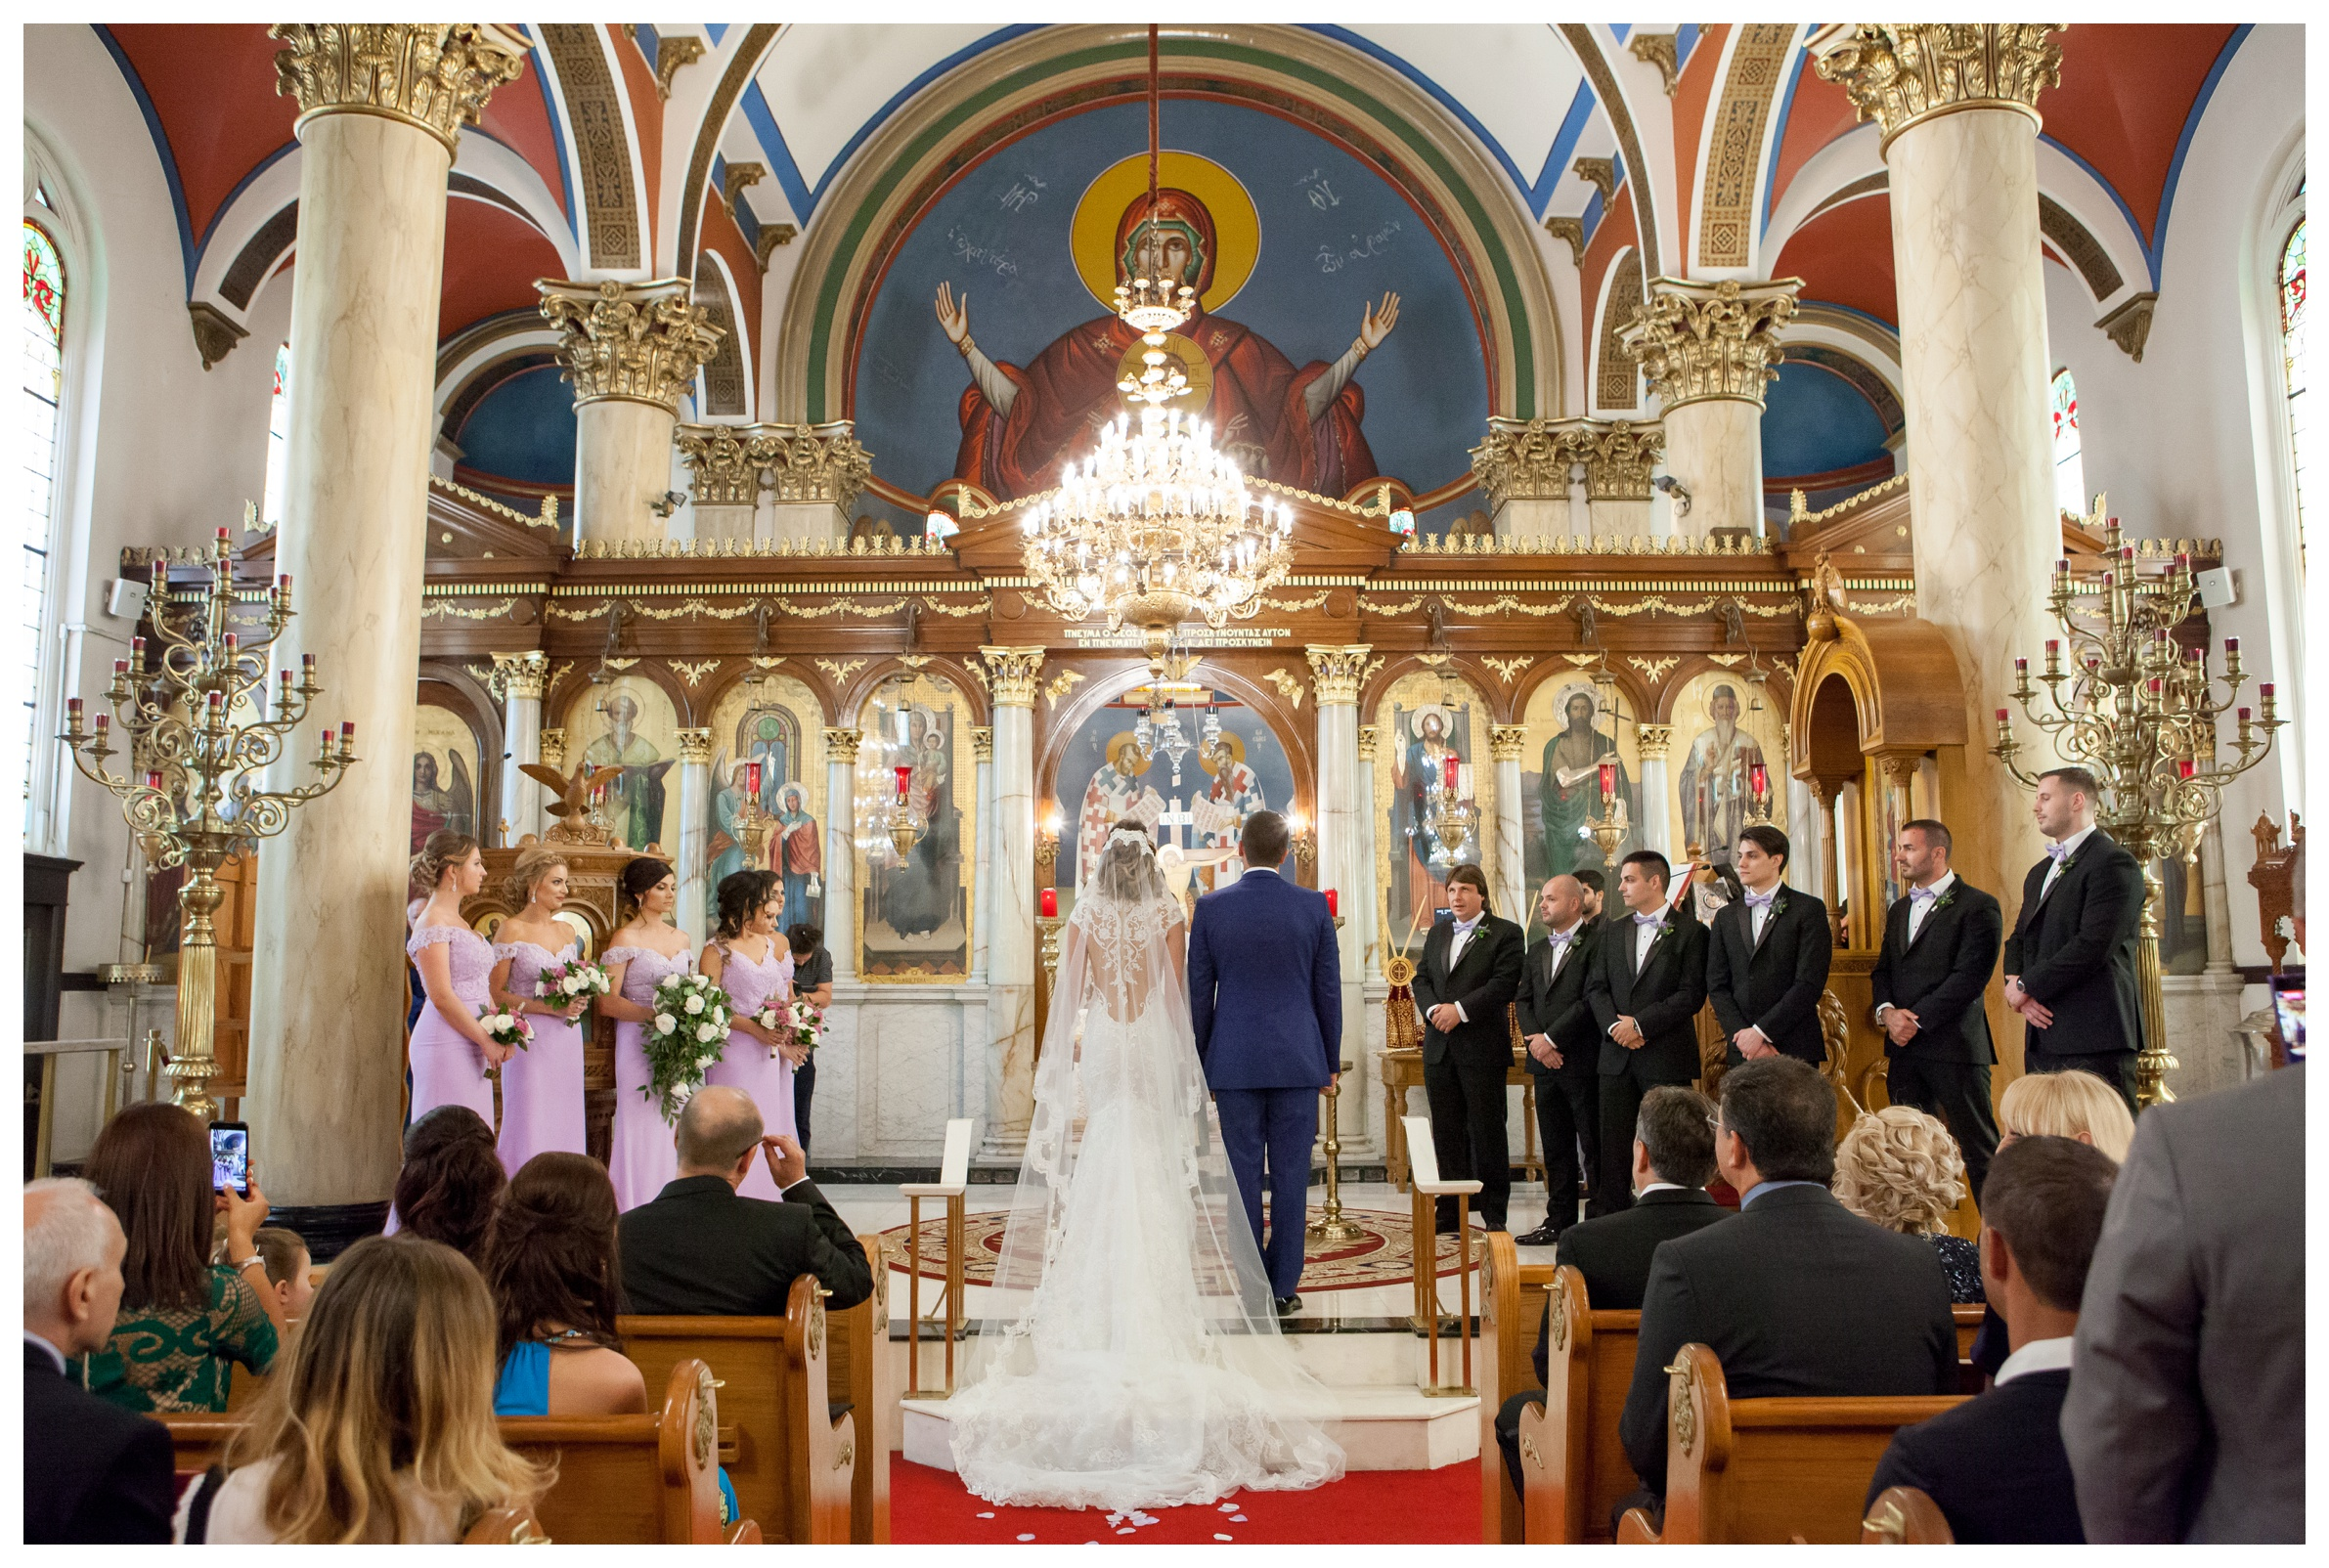 pazzos-wedding-photos_0013.jpg